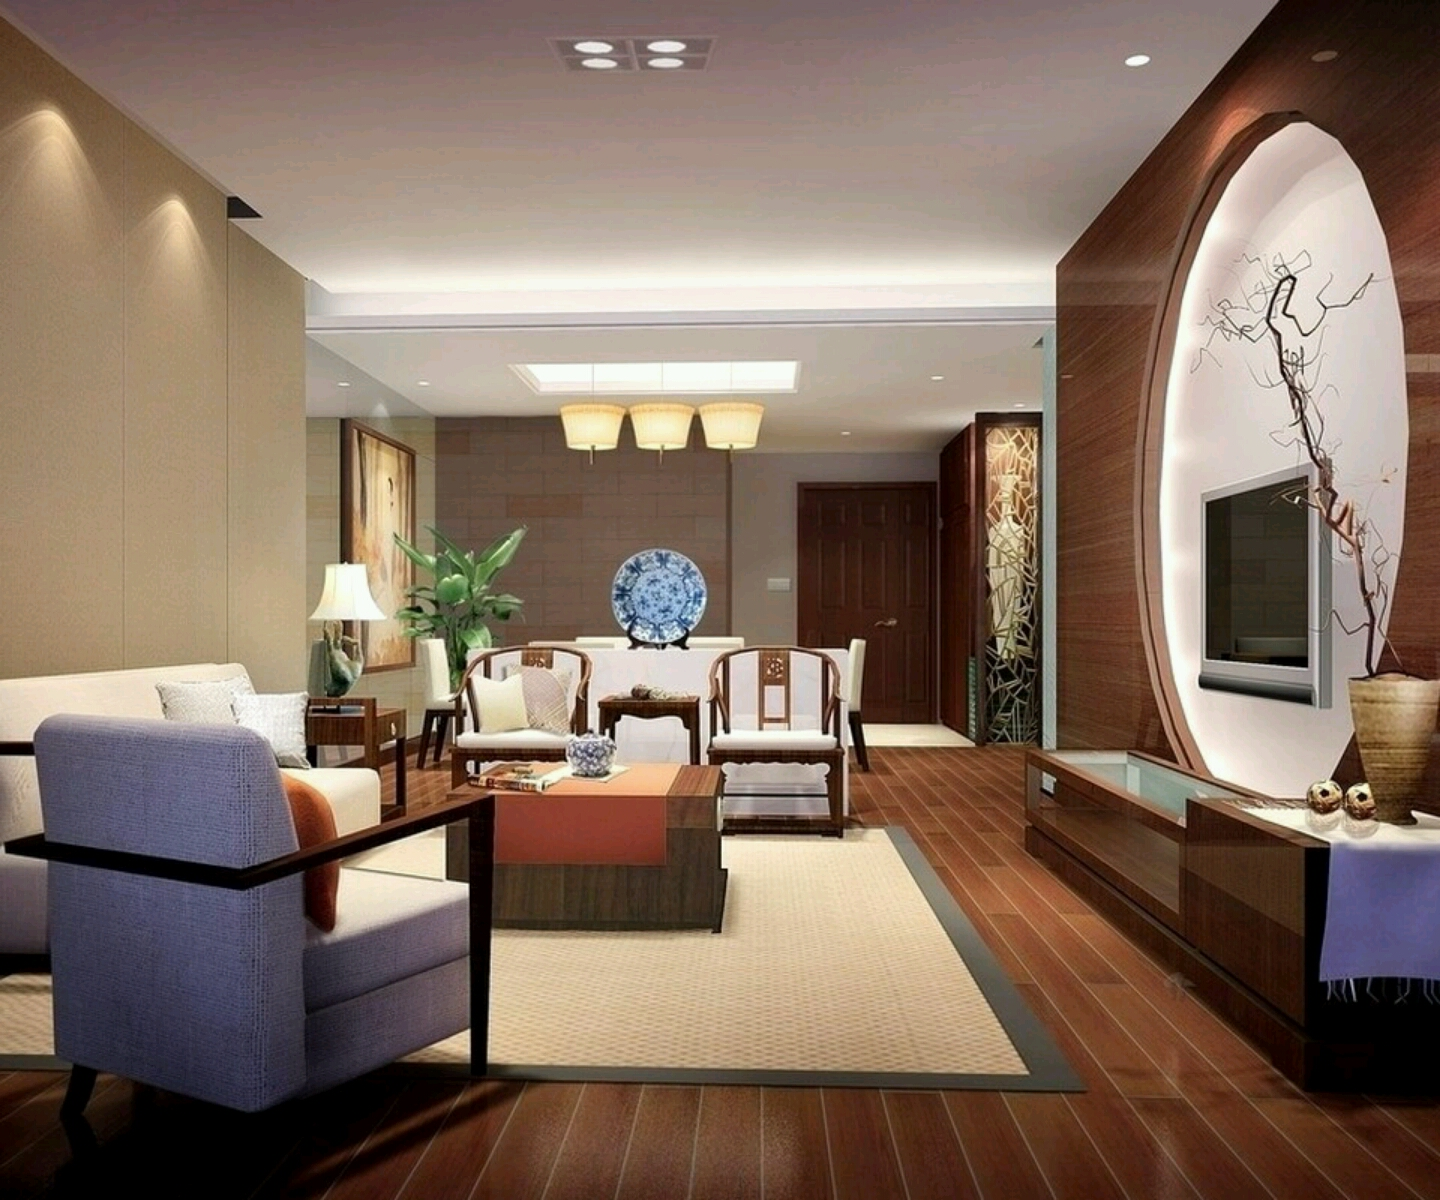 Luxury homes interior decoration living room designs ideas for Interior design living room